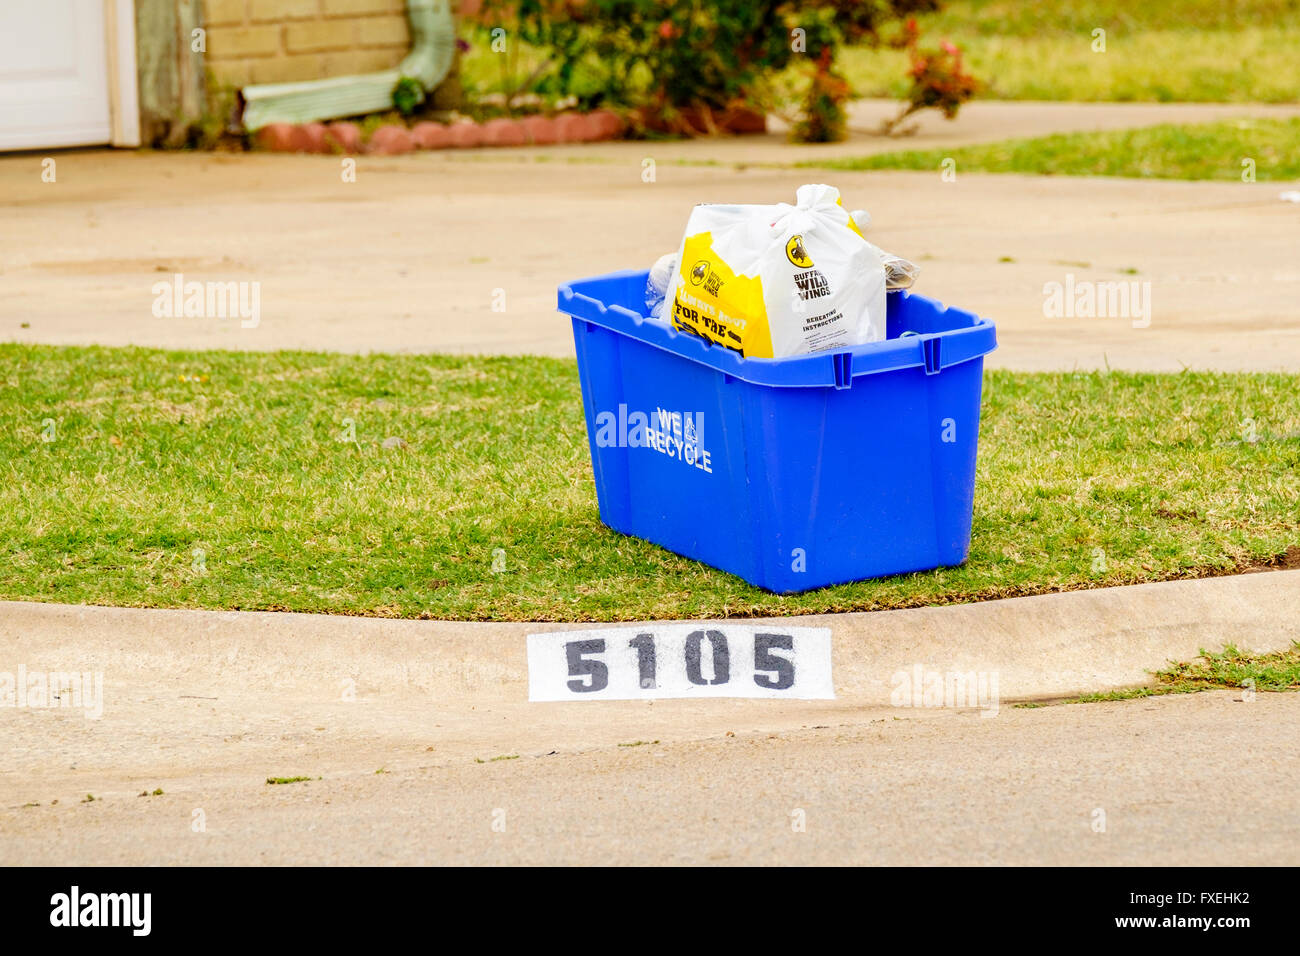 A blue plastic bin with recyclables waiting for pick up in Oklahoma City, Oklahoma, USA. - Stock Image